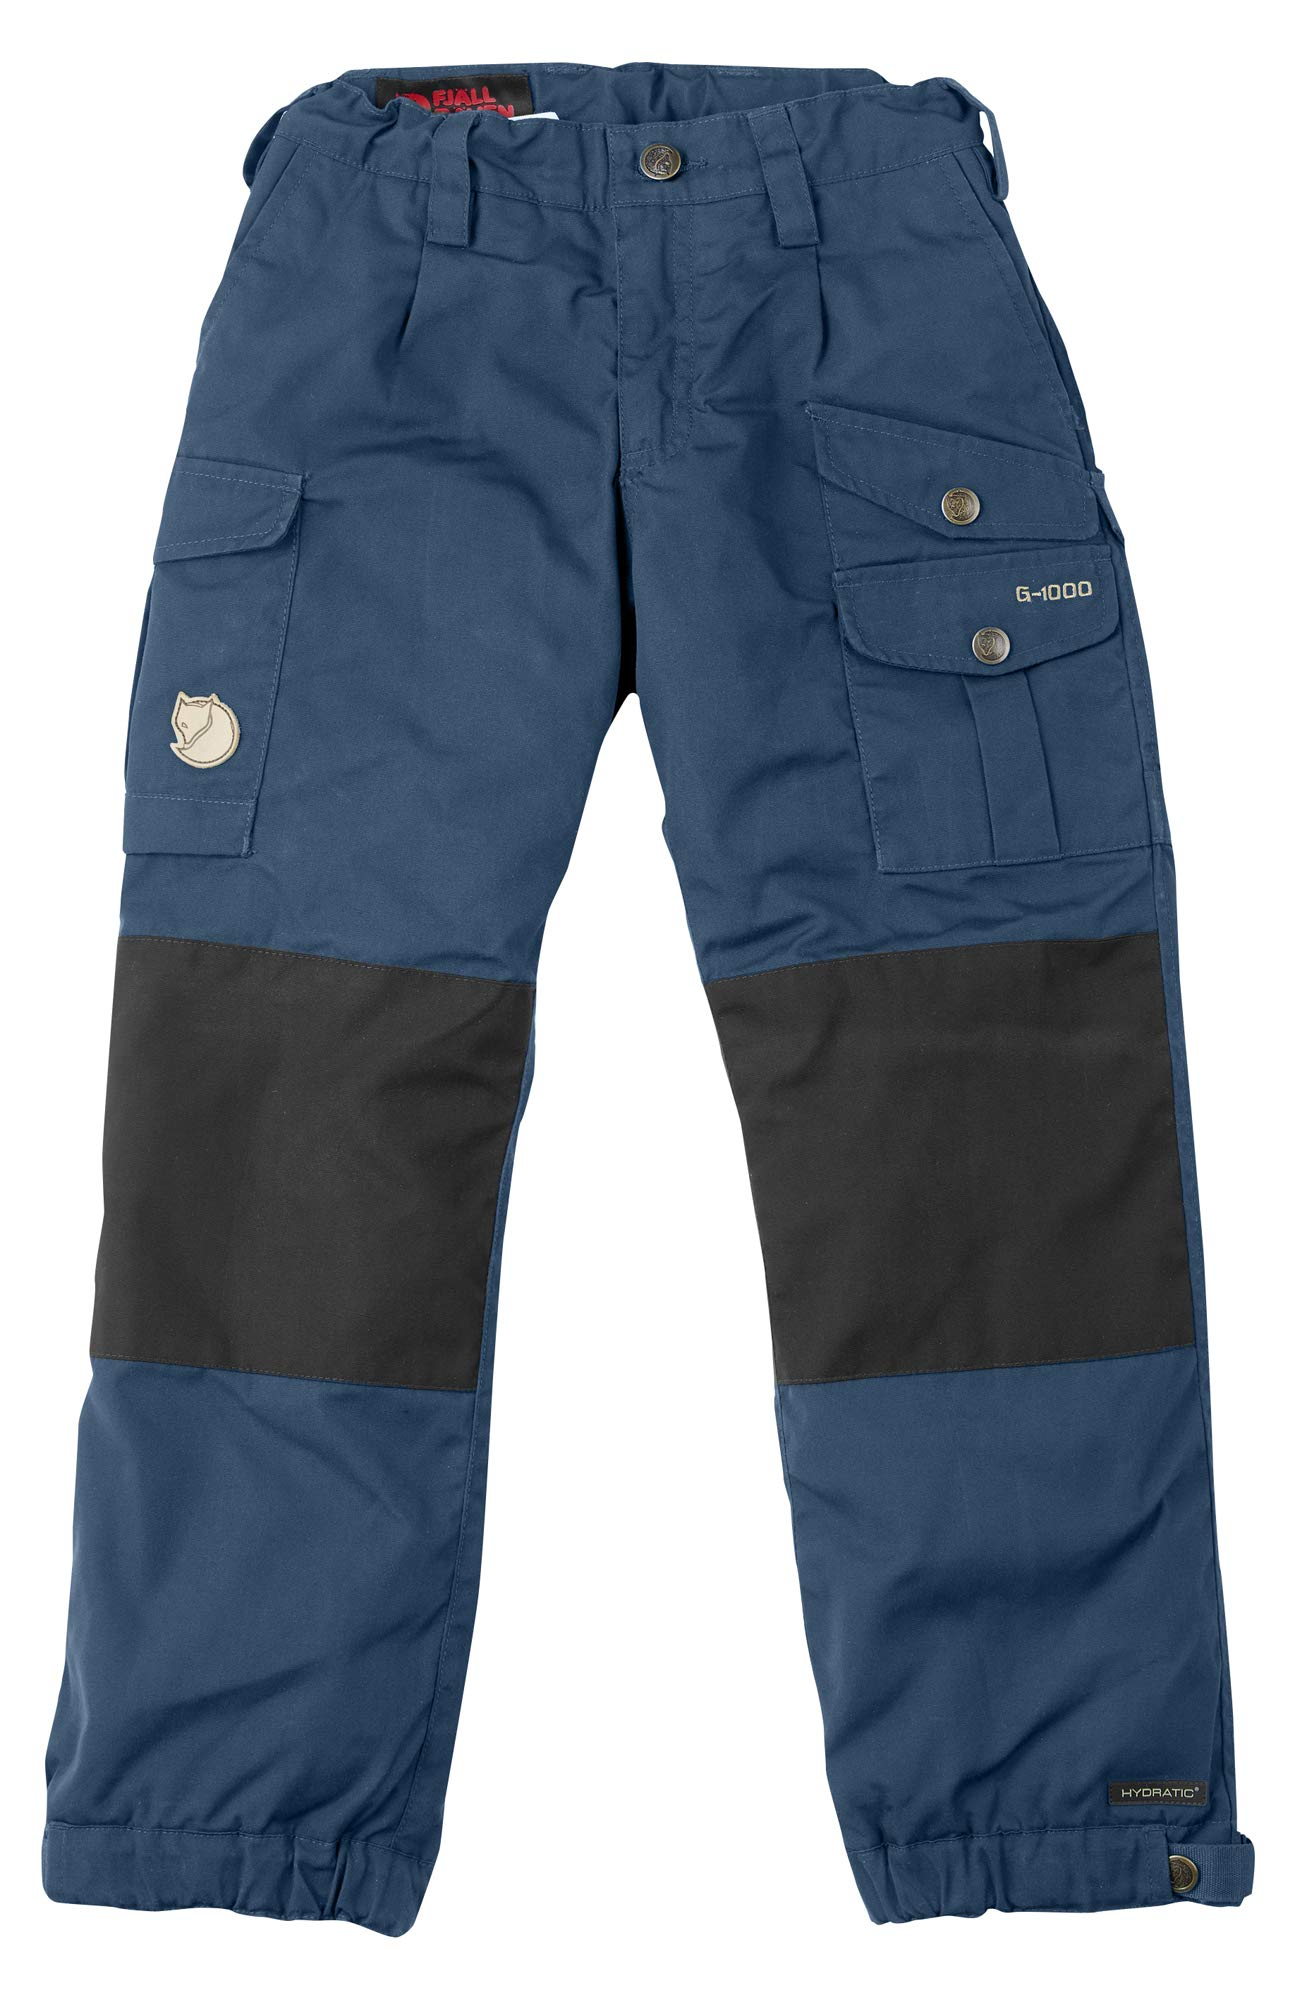 Fjallraven - Kid's Vidda Padded Trousers, Uncle Blue, 128 by Fjallraven